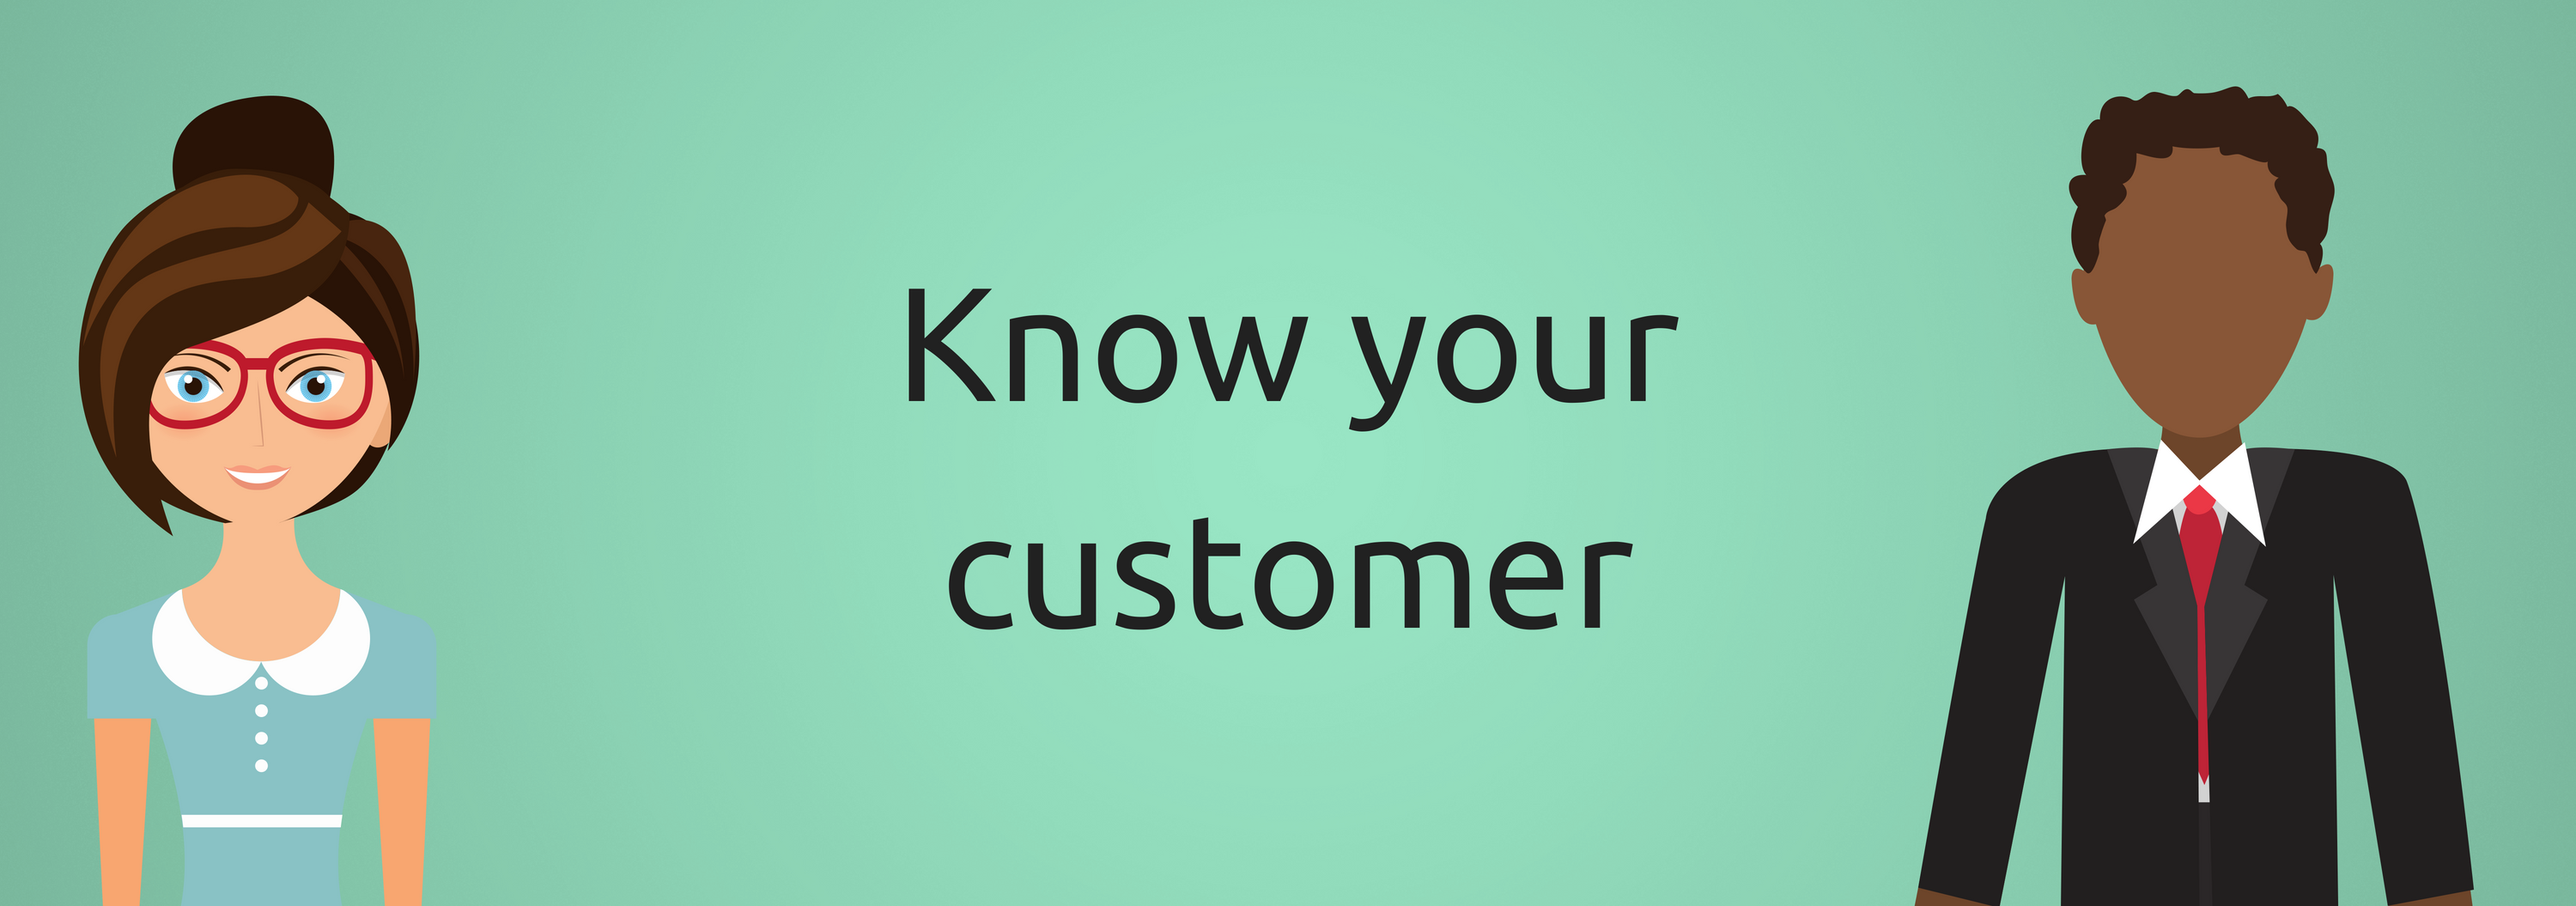 Know Your Customer Infographic